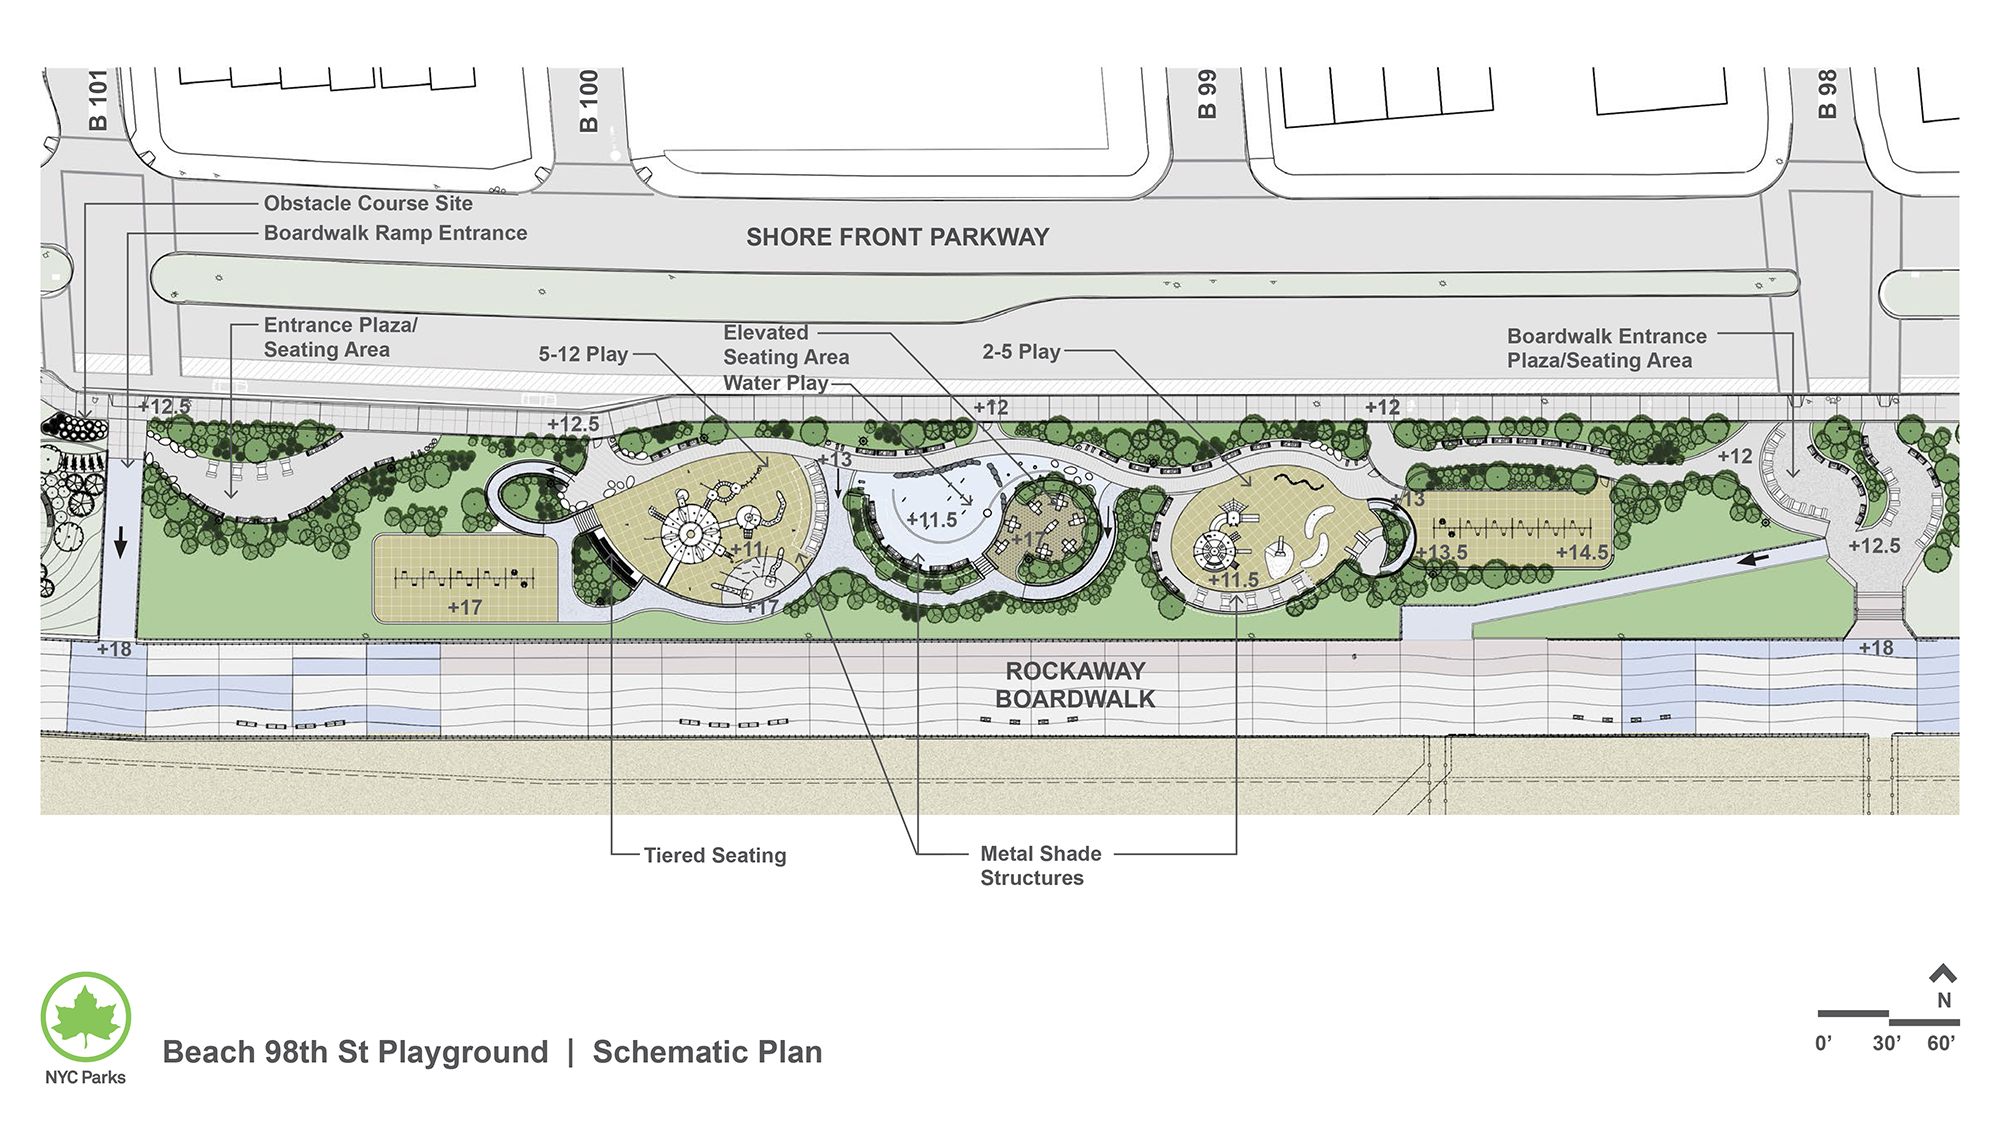 Design of Shore Front Parkway Beach 98th Playground Construction